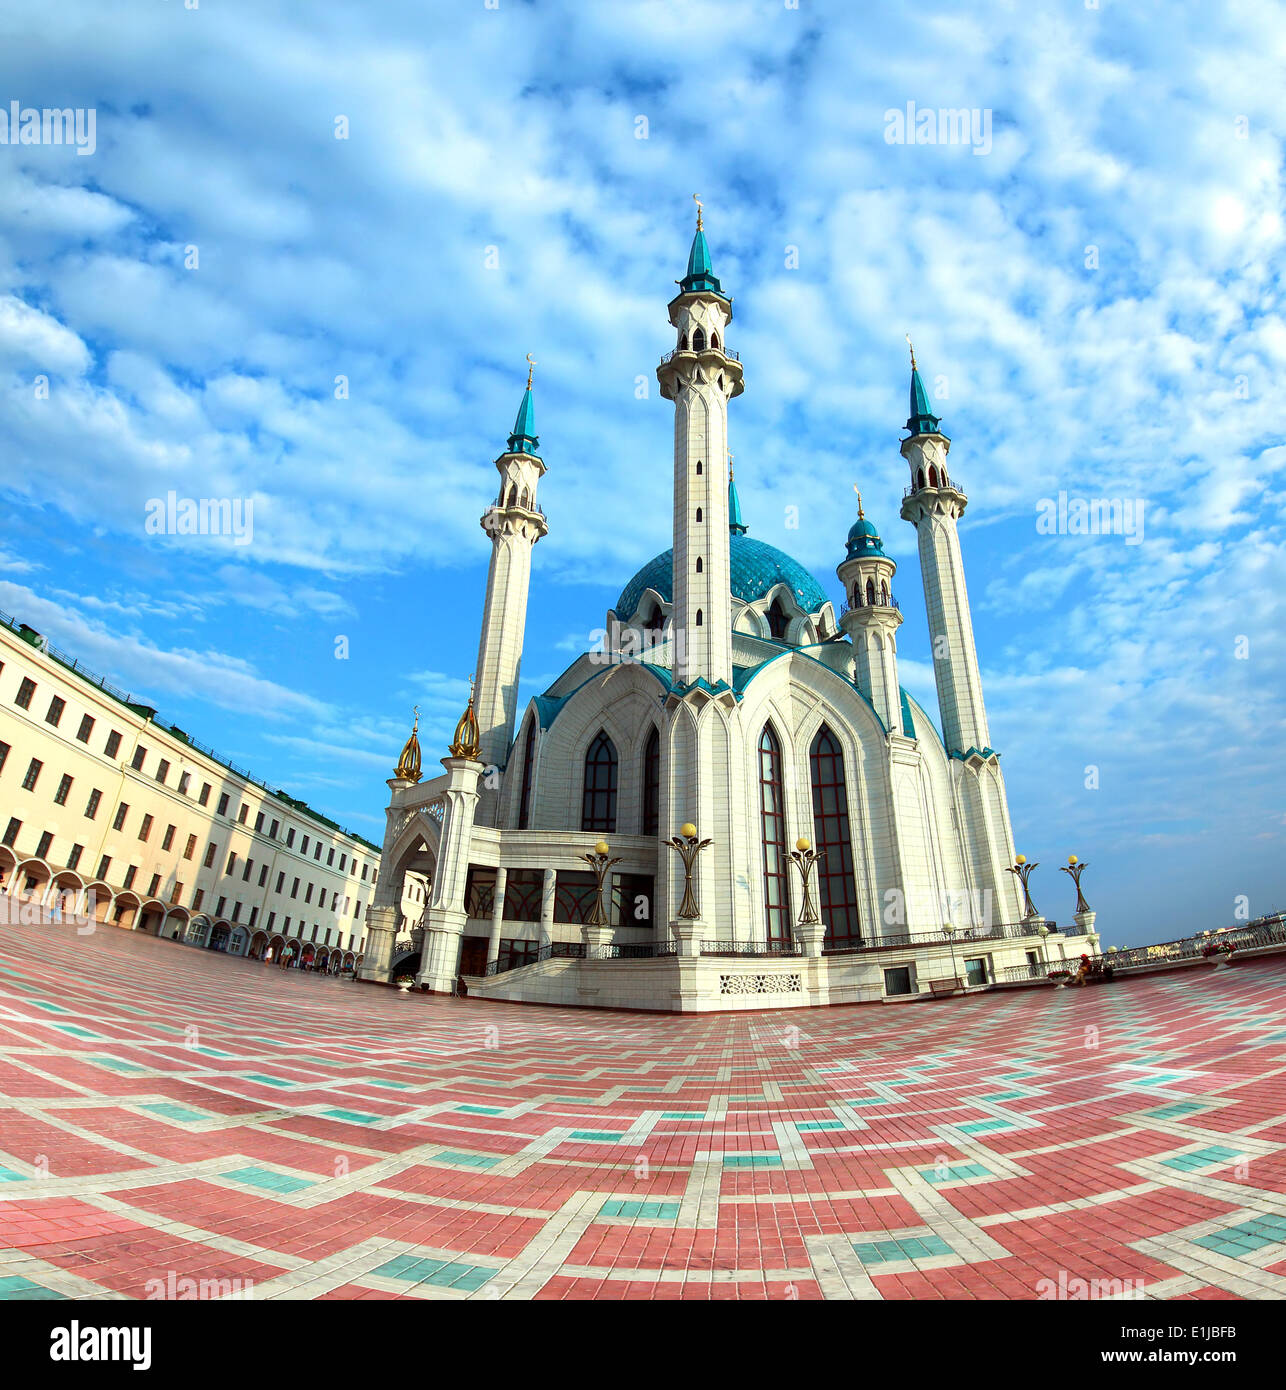 kul sharif mosque in kazan russia - Stock Image